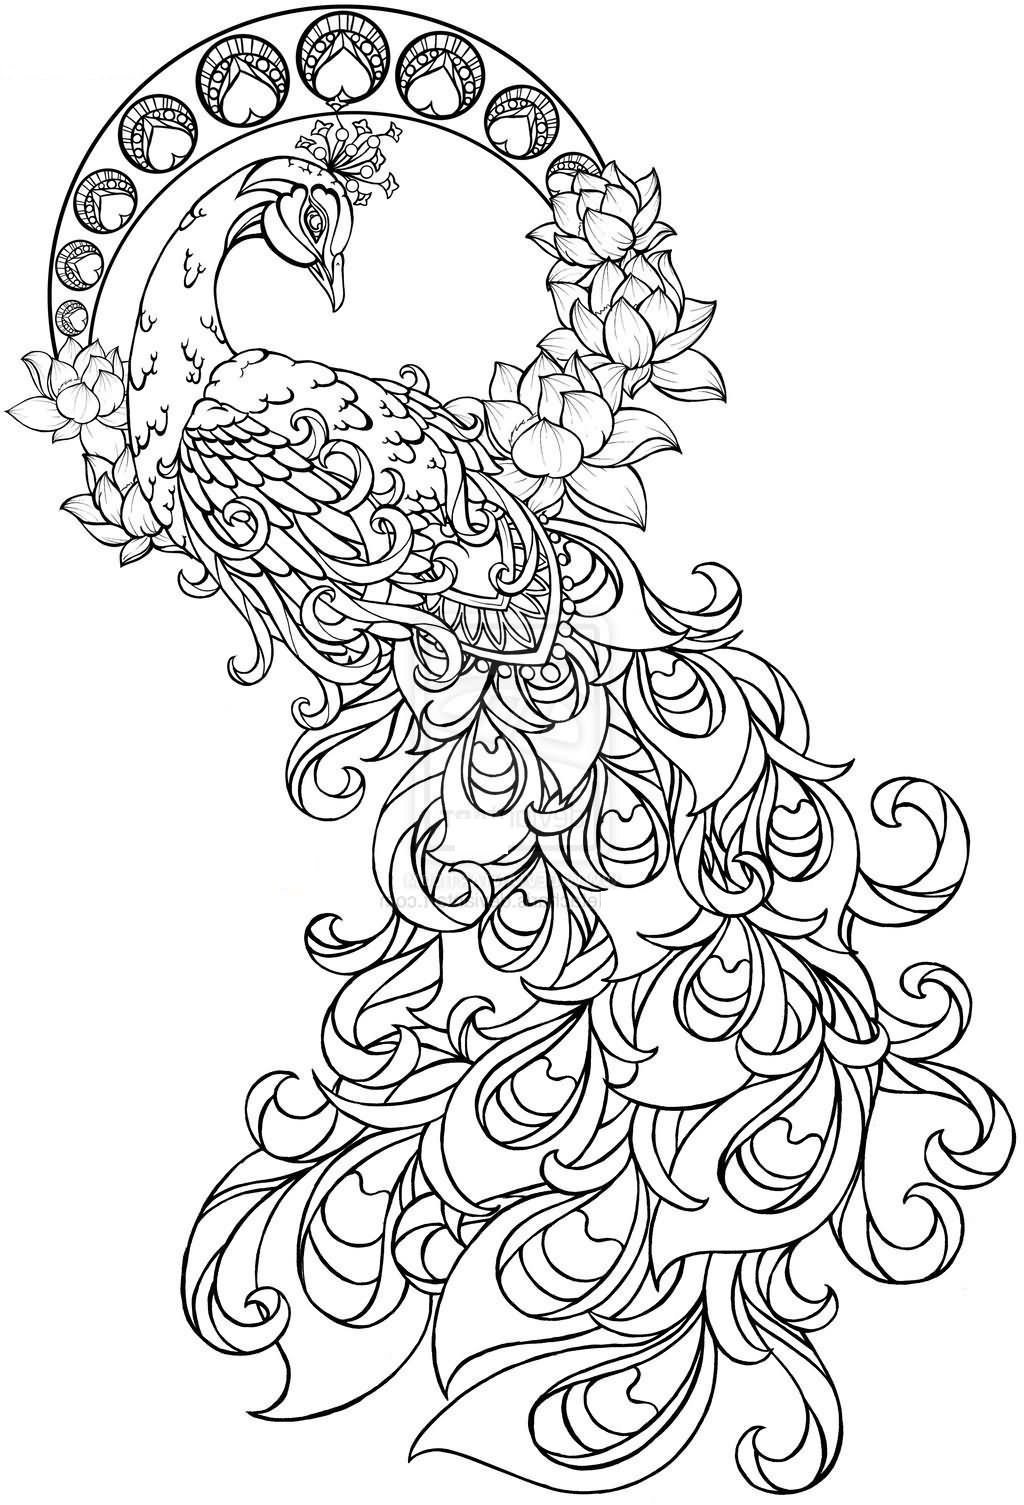 colouring pictures of peacock patamata praneel ready to printable peacock coloring peacock colouring of pictures